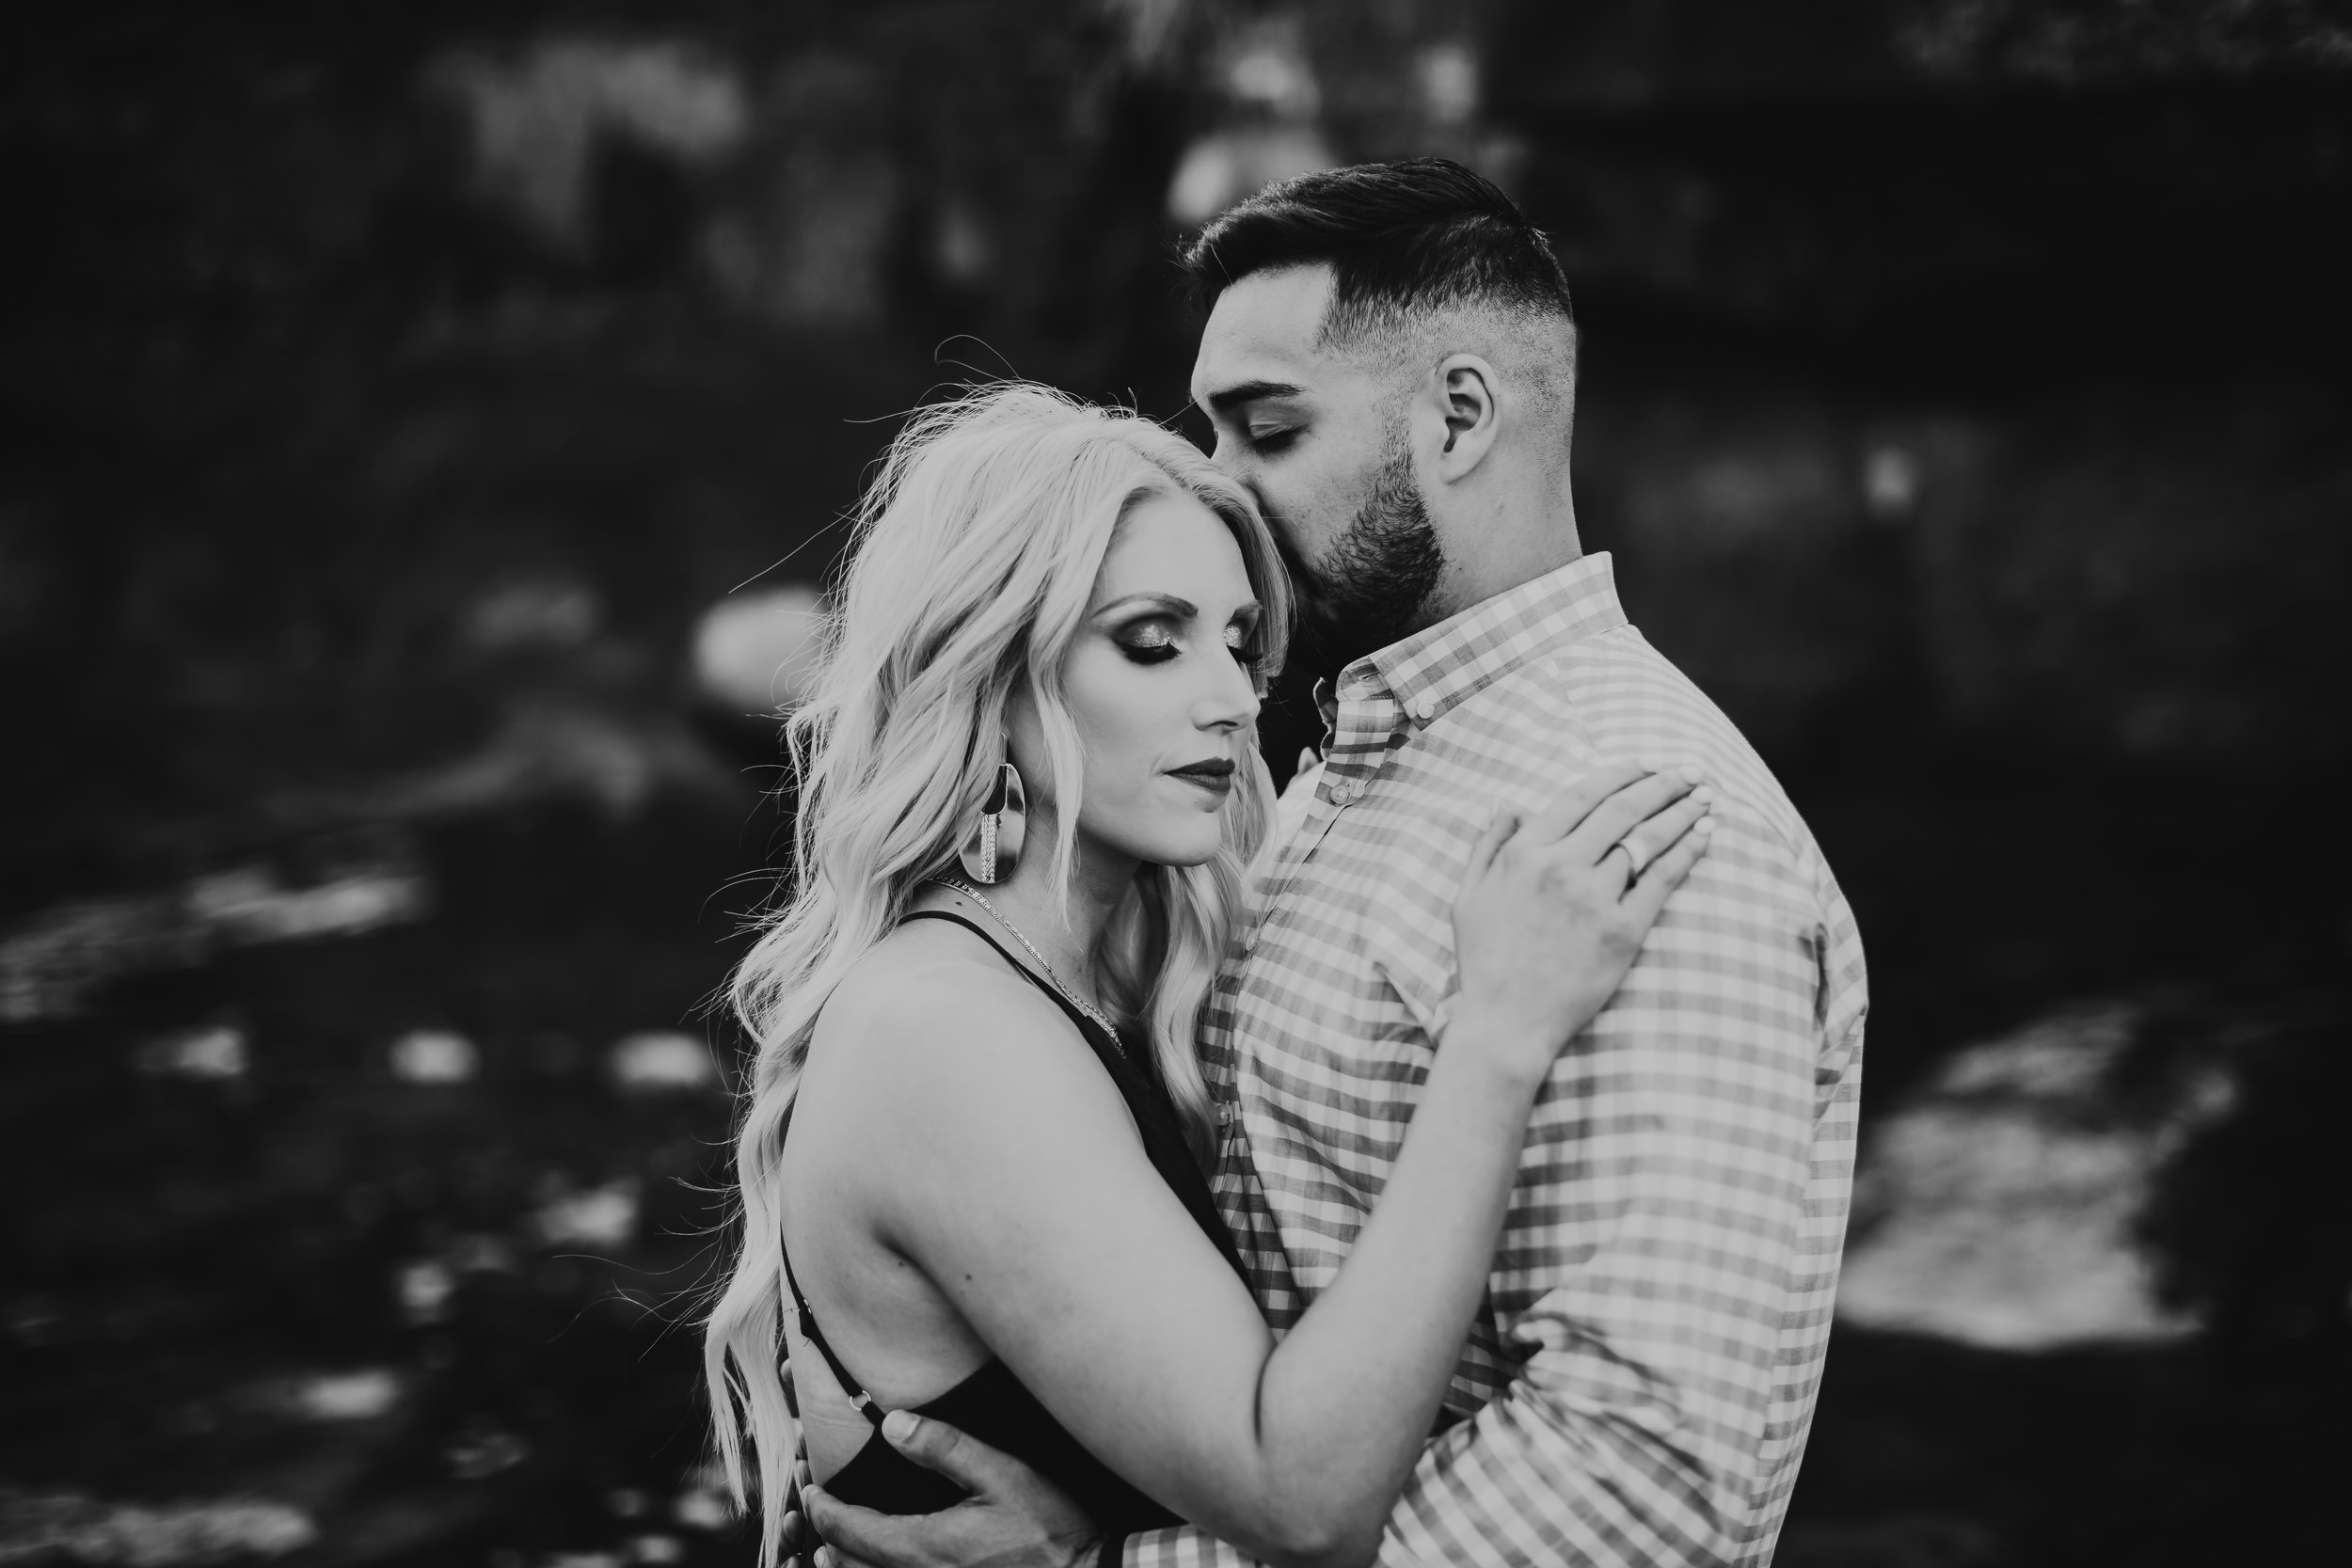 Black and white photo of kiss on the forehead between bride to be and her fiance #engagementphotos #riverfalls #engaged #personality #amarillotexas #engagementphotographer #lifestylephotos #amarillophotographer #locationchoice #texasengagementphotos #engagment #tealawardphotography #wildliferefuge